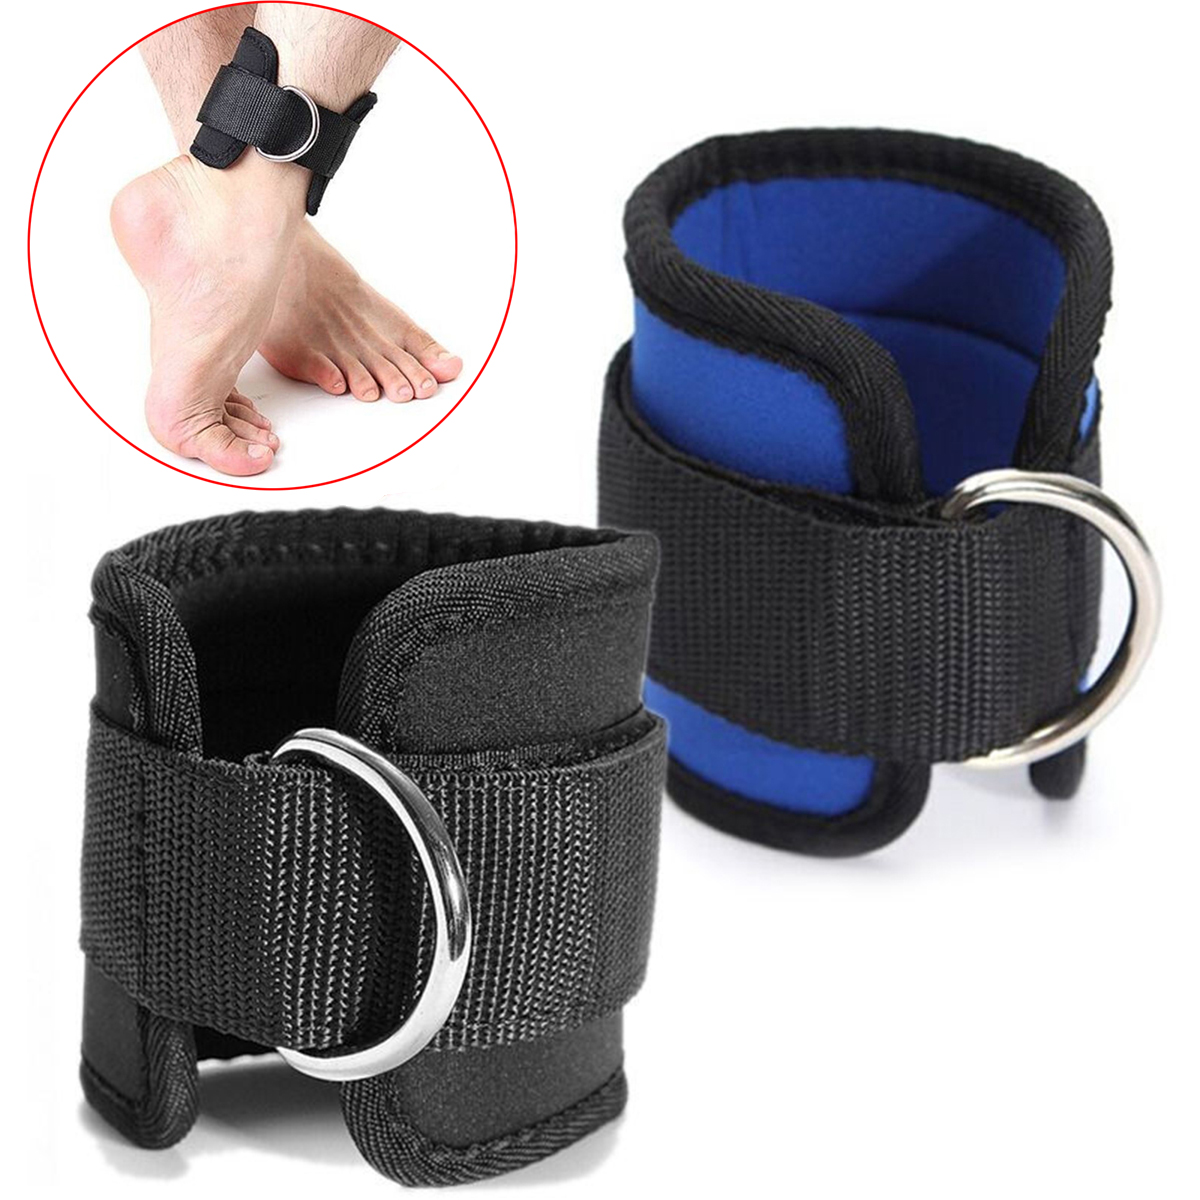 Nyeste D-ring ankelrem Buckle Body Building Modstand Band Gym Multi Lår Leg Ankel Cuffs Power Vægtløftning Fitness Rope